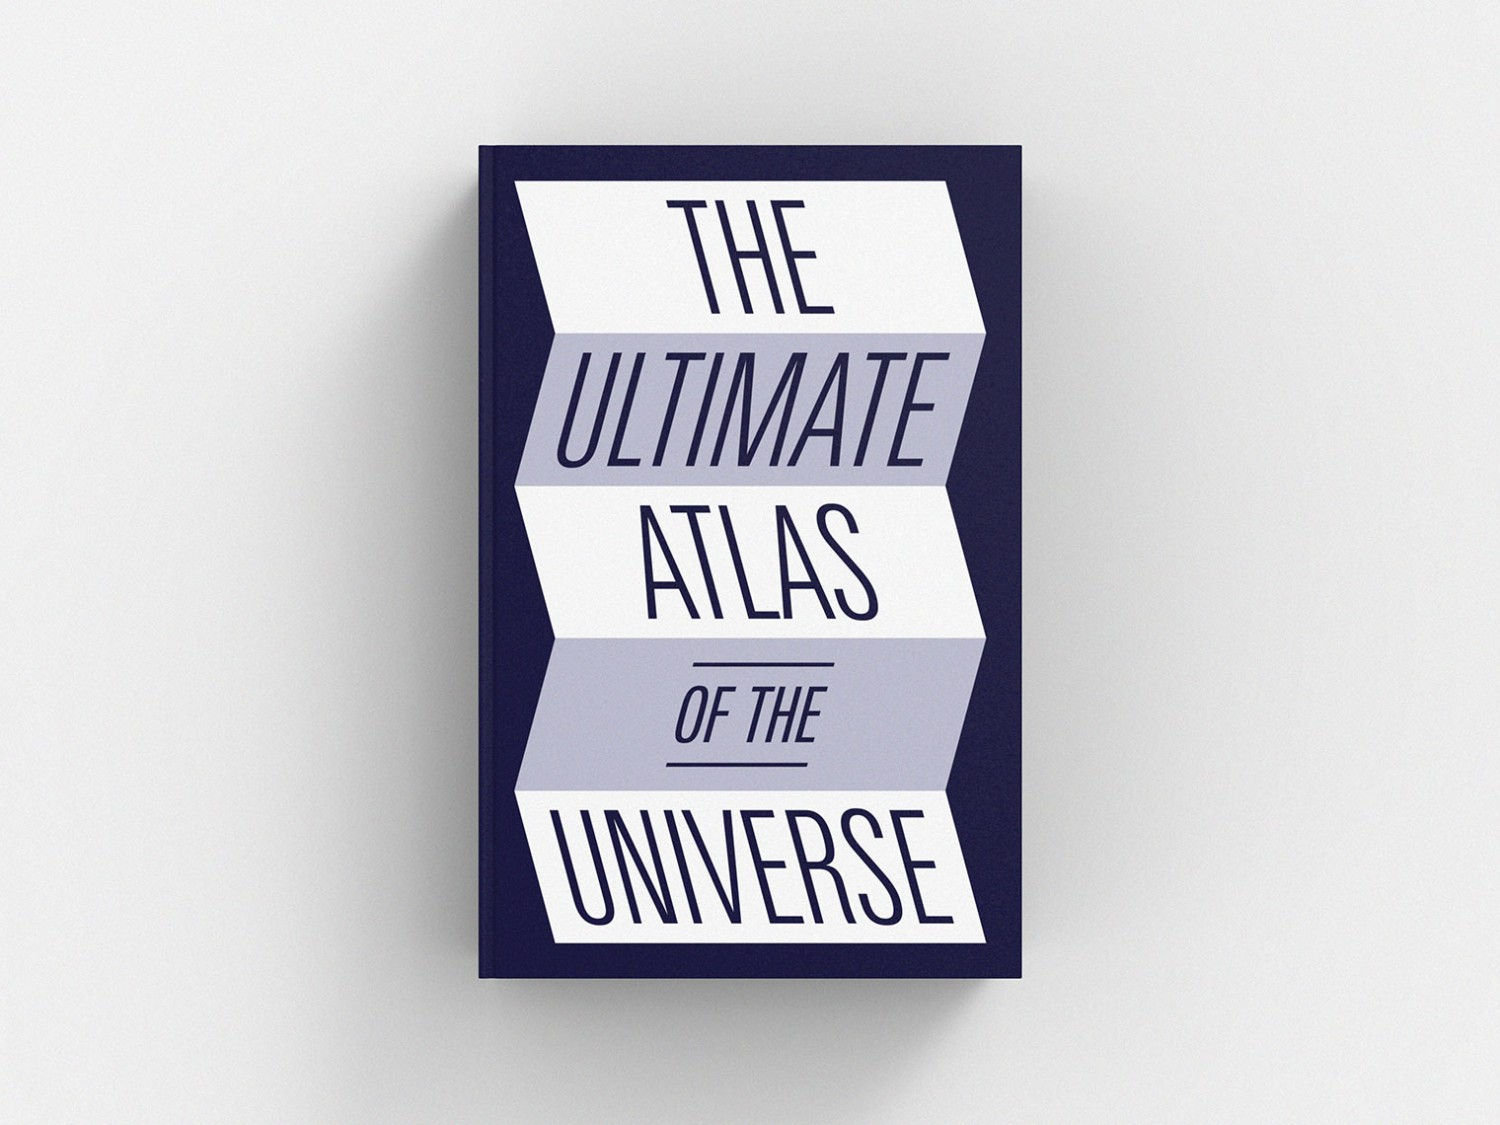 The Ultimate Atlas of the Universe